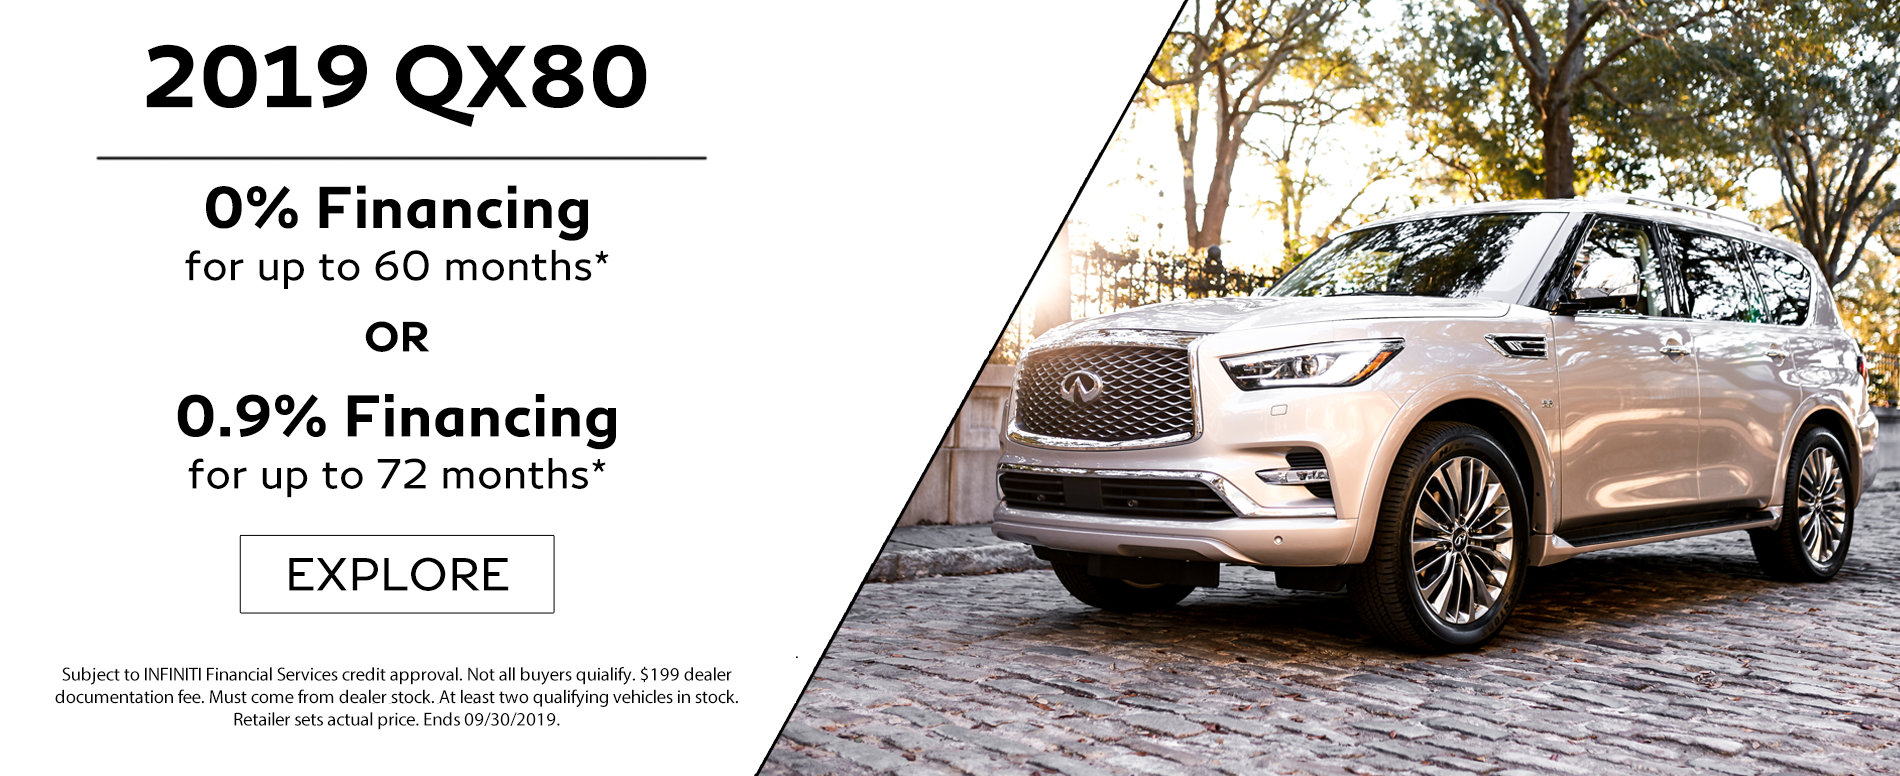 2019 QX80 0% or 0.9% Financing